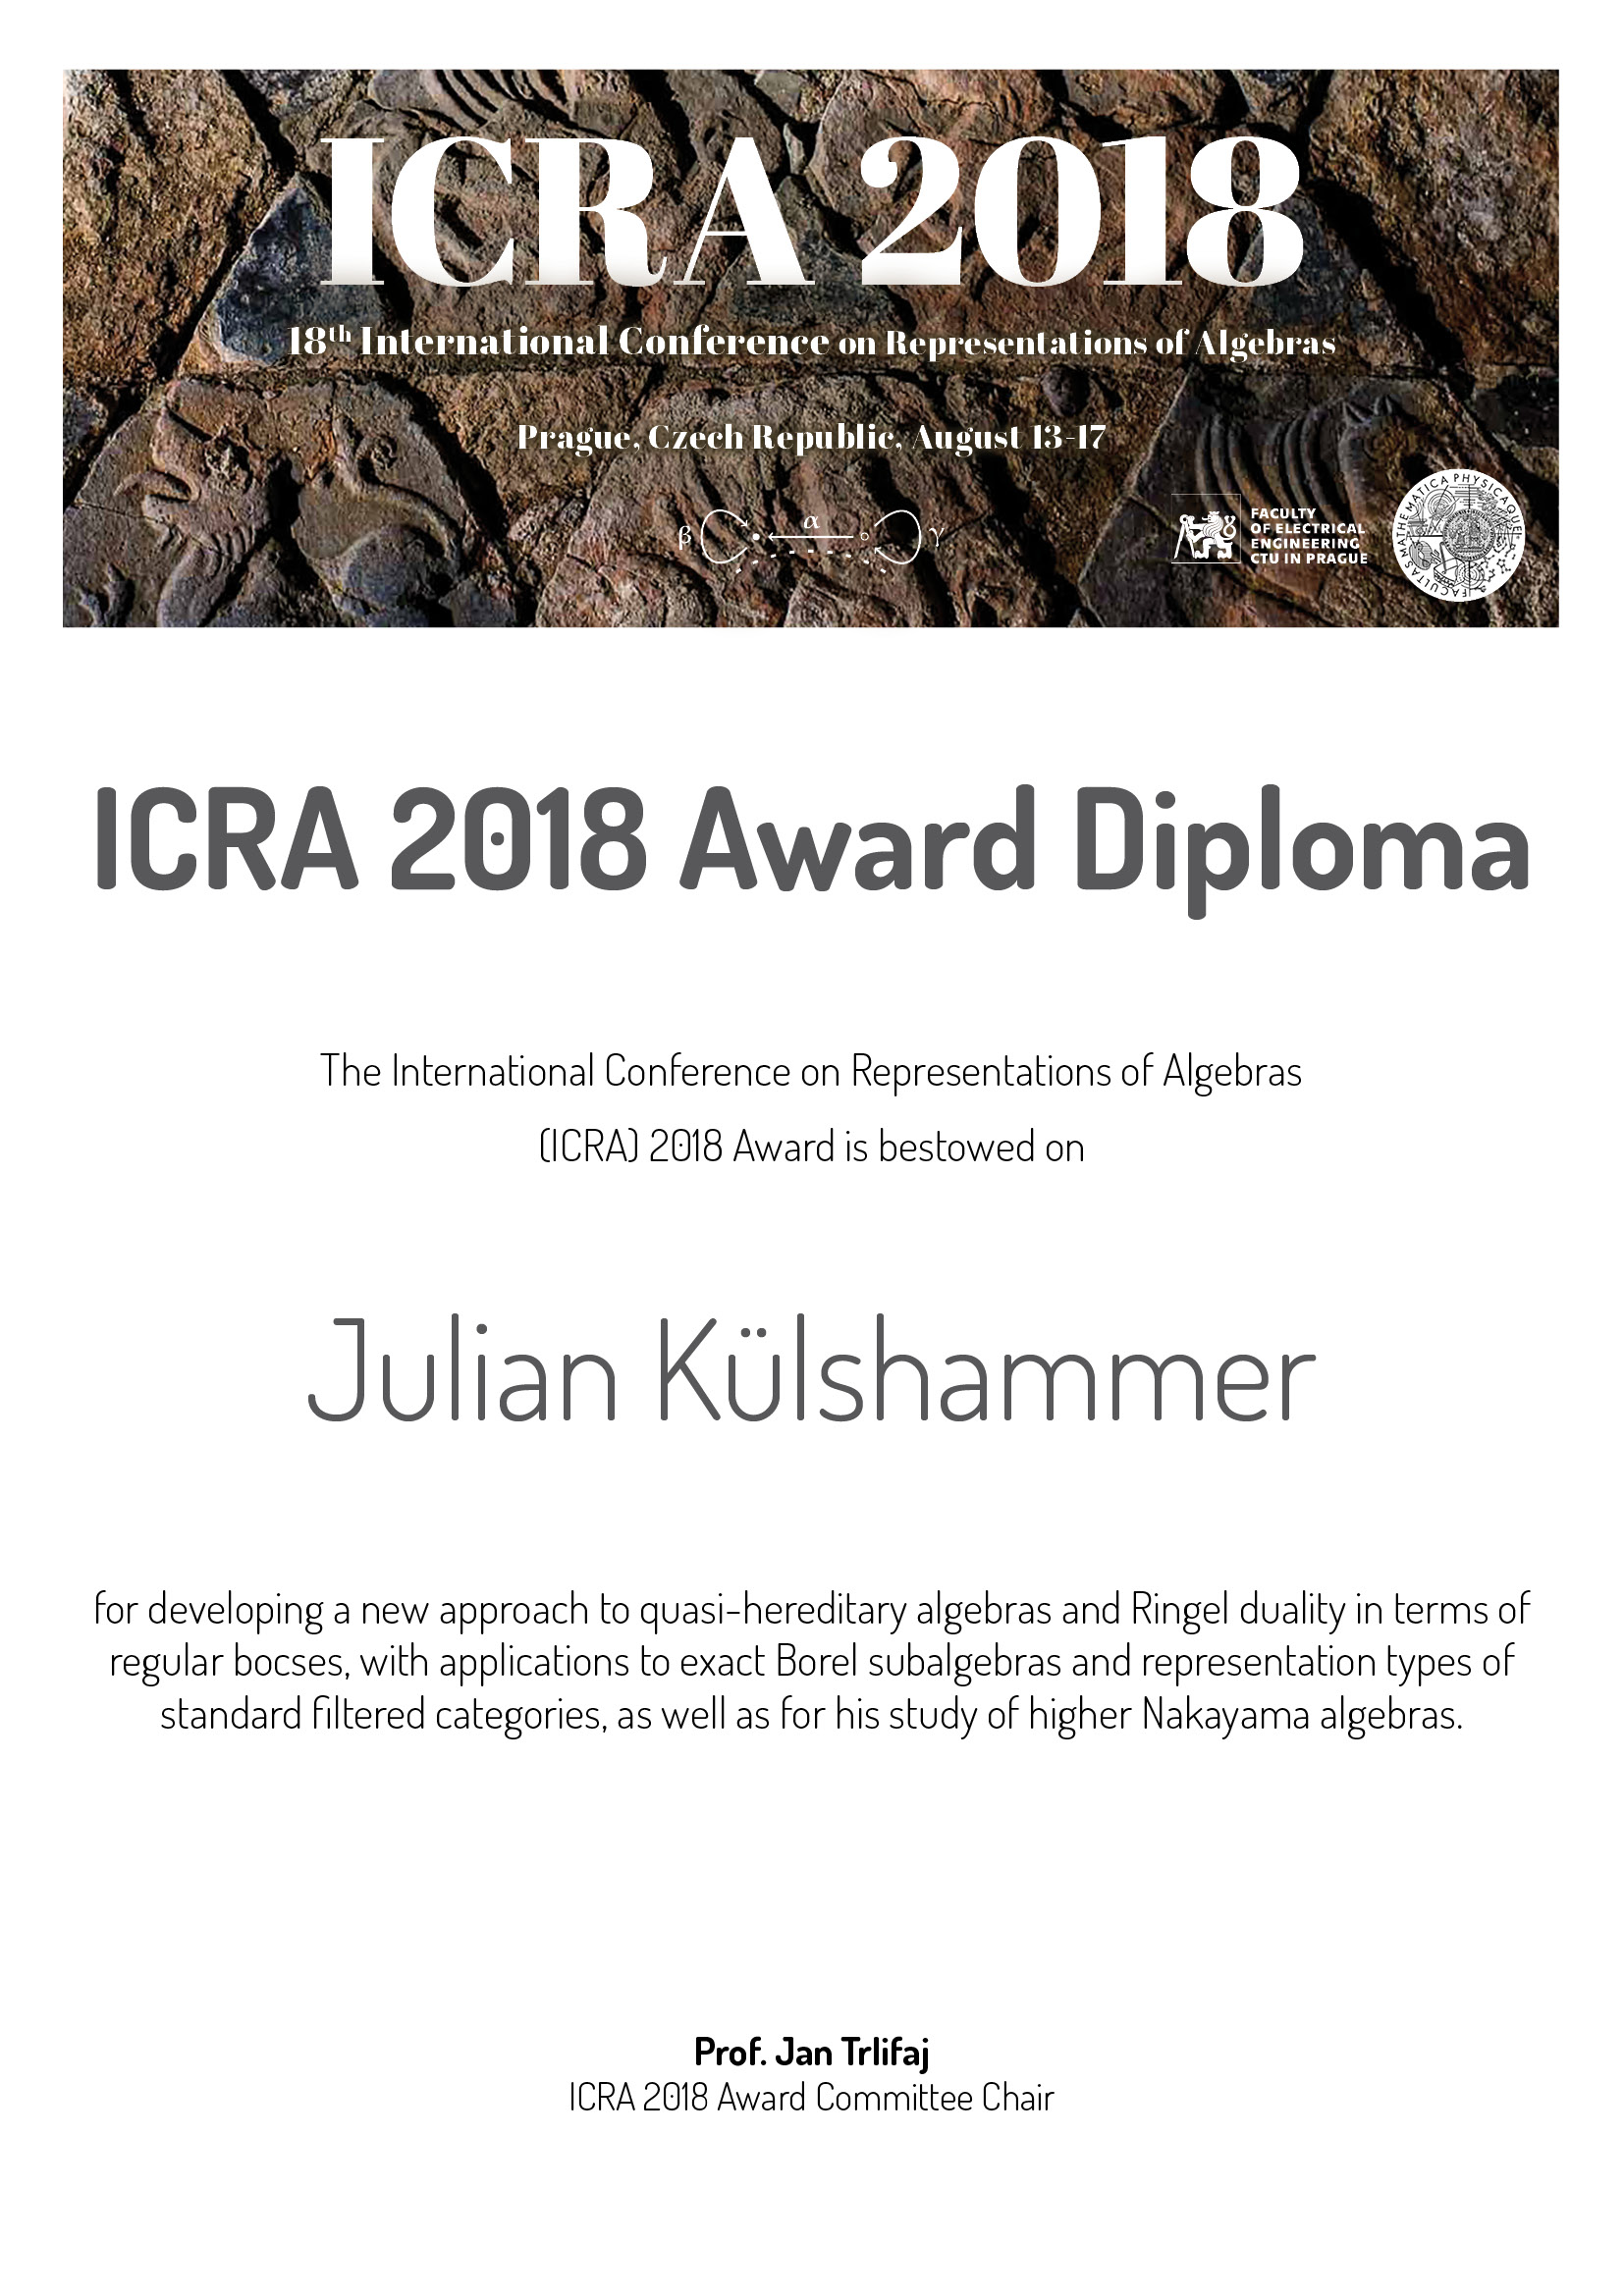 ICRA Awards